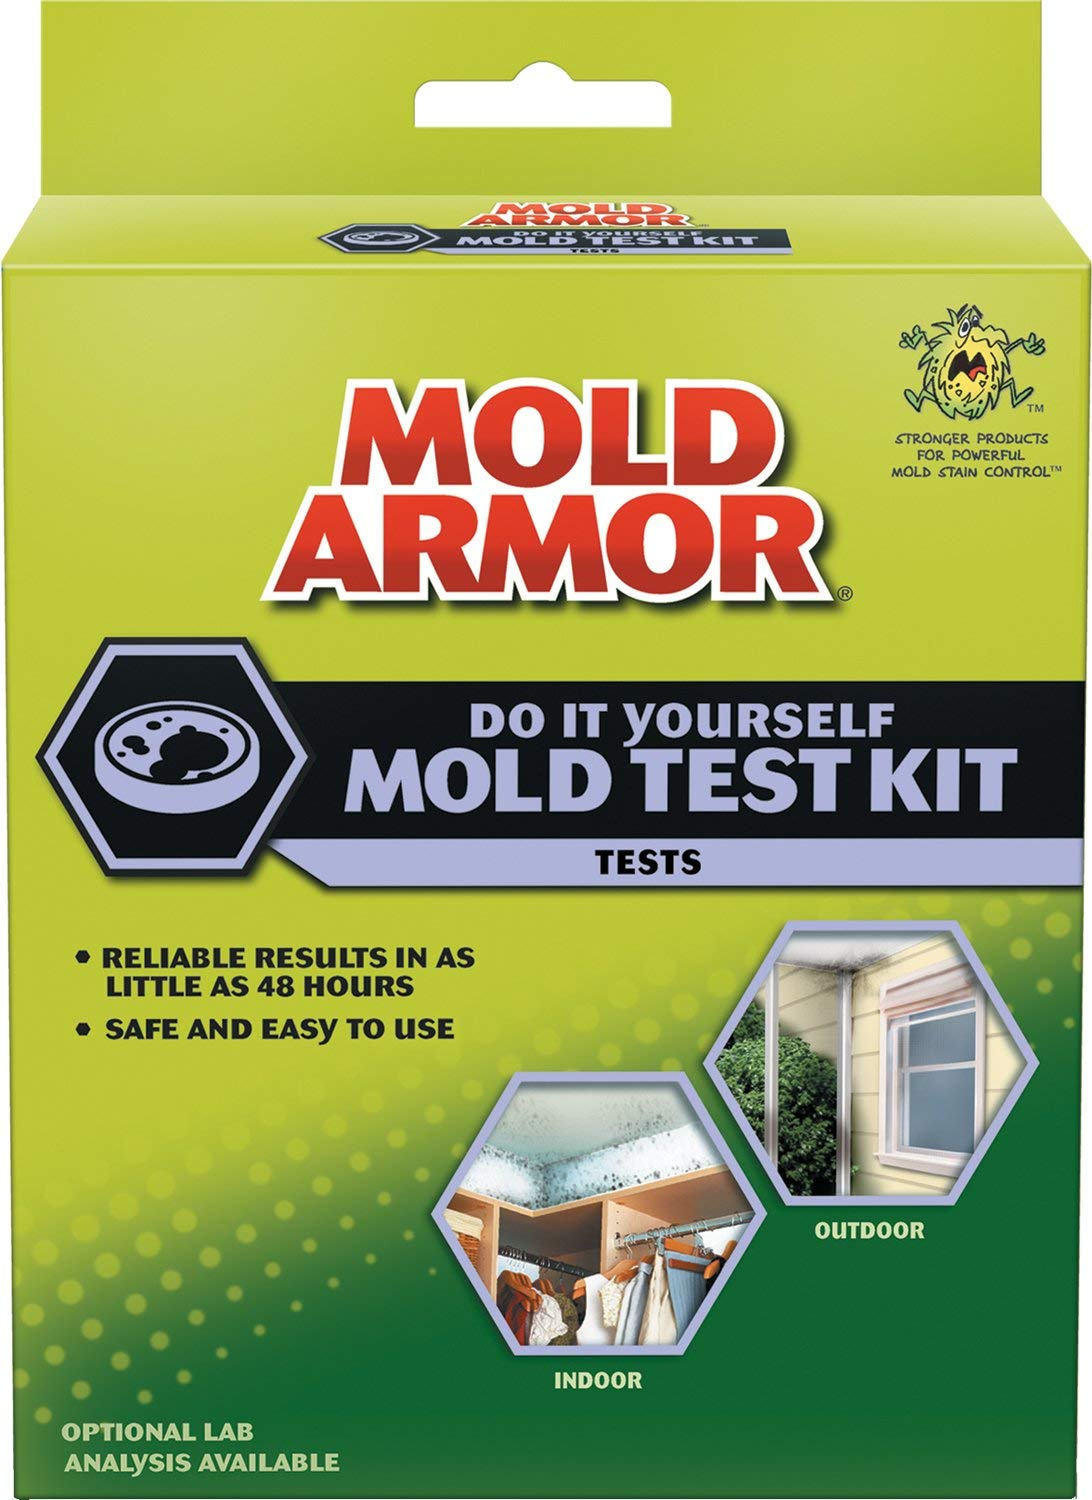 Image of box with mold amor test kit